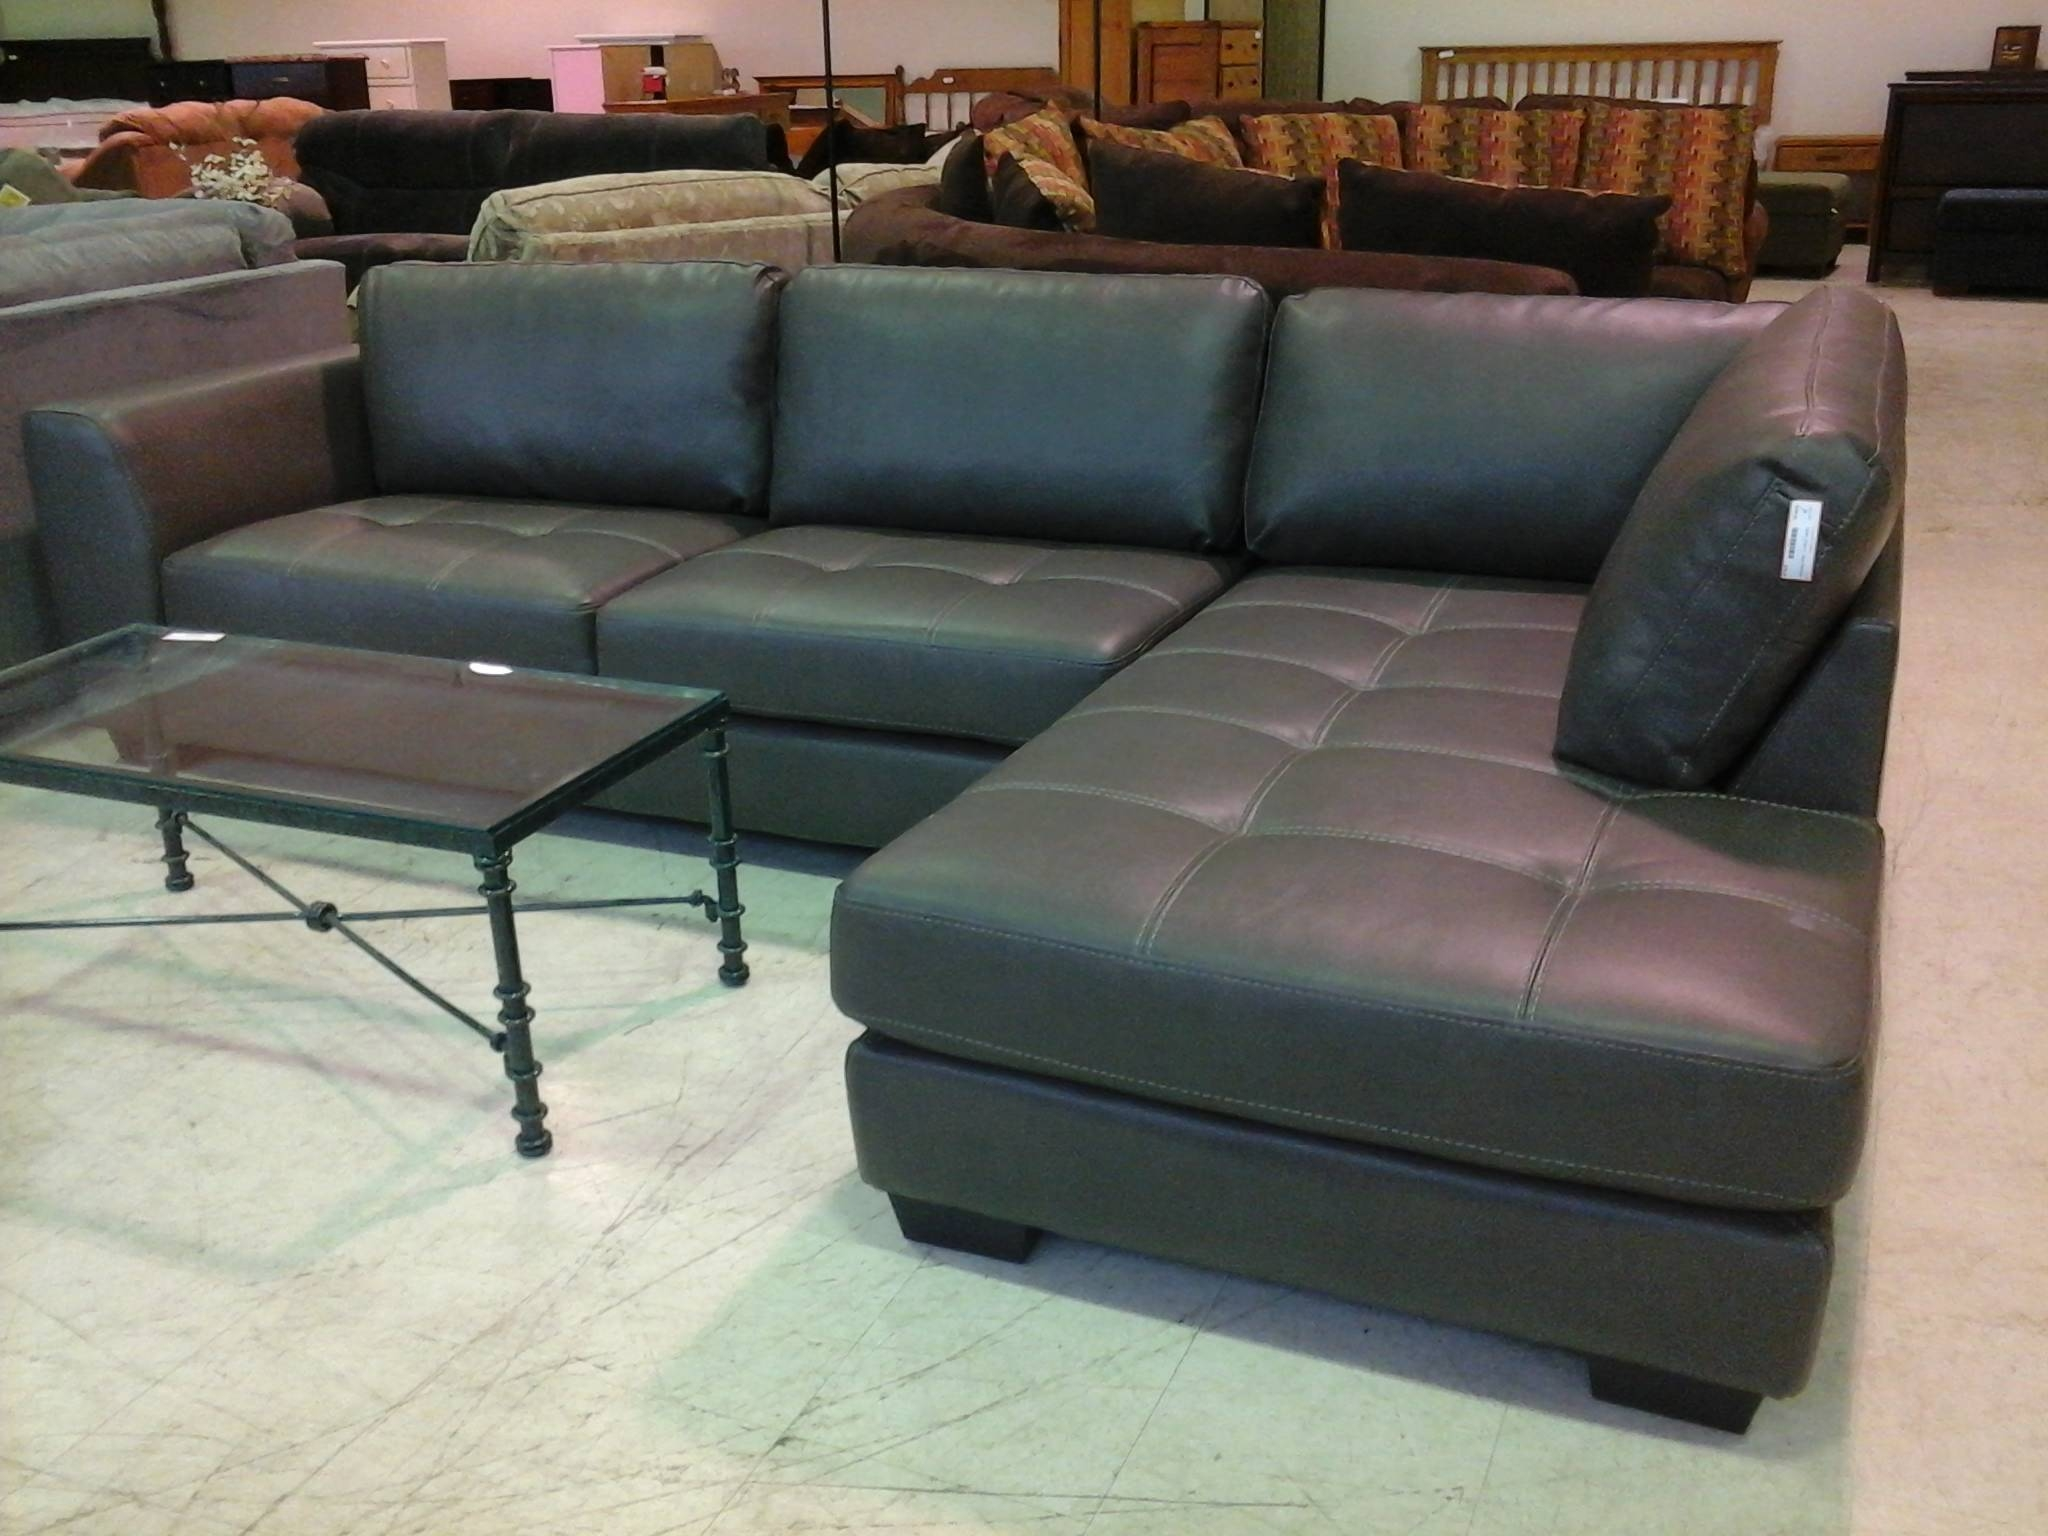 Charcoal Gray Leather Sectional Sofa | Tehranmix Decoration in Charcoal Grey Sofas (Image 6 of 30)